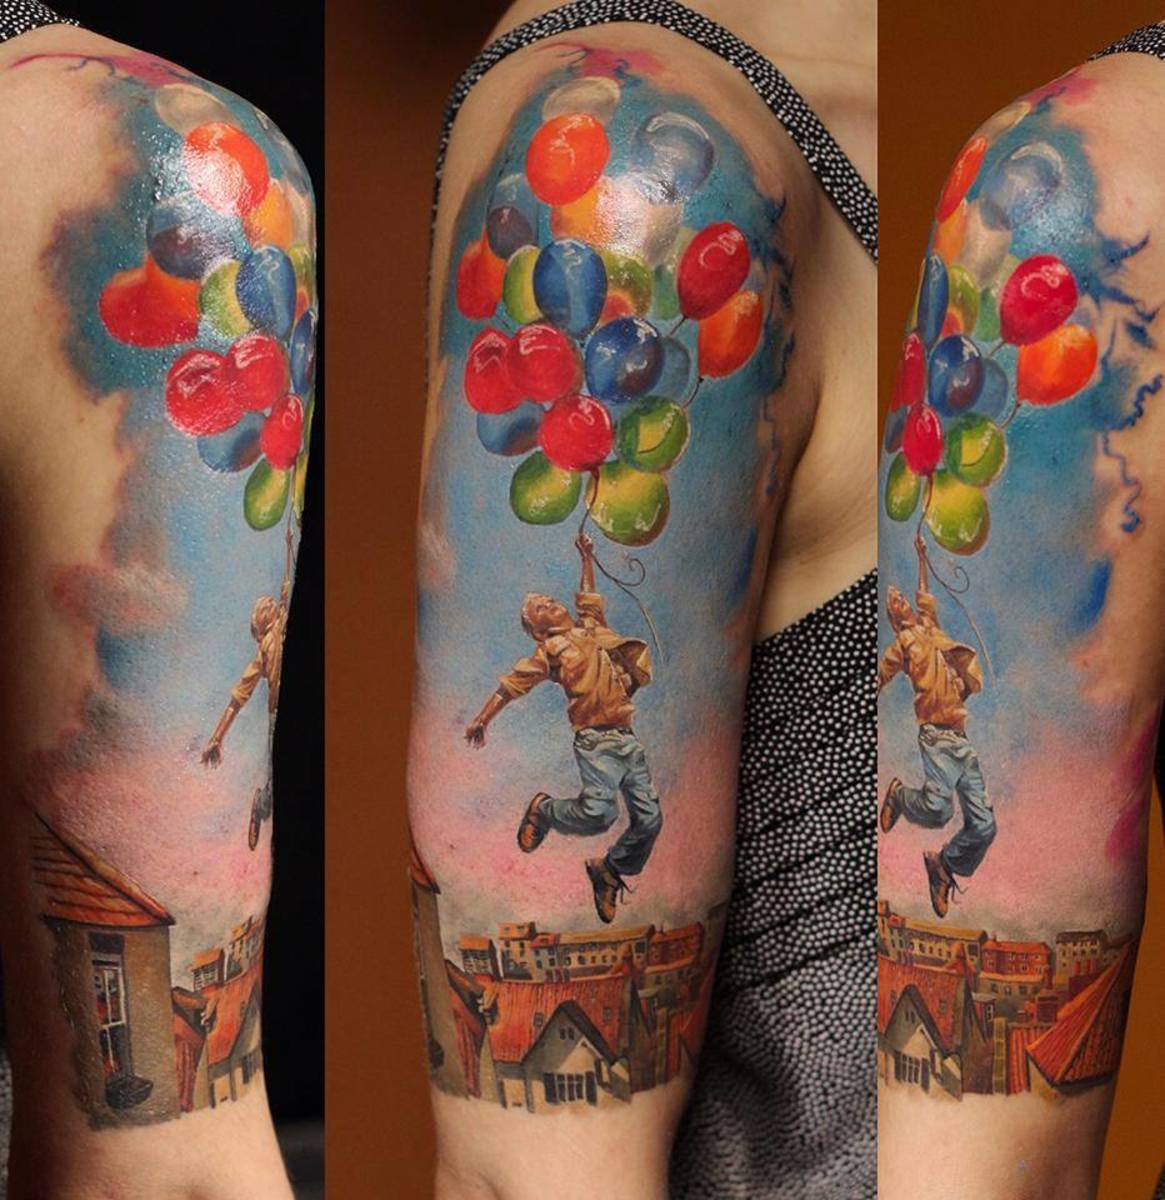 Reviews Of The Best Tattoo Aftercare Cream Kits Tatring Ideas And Designs